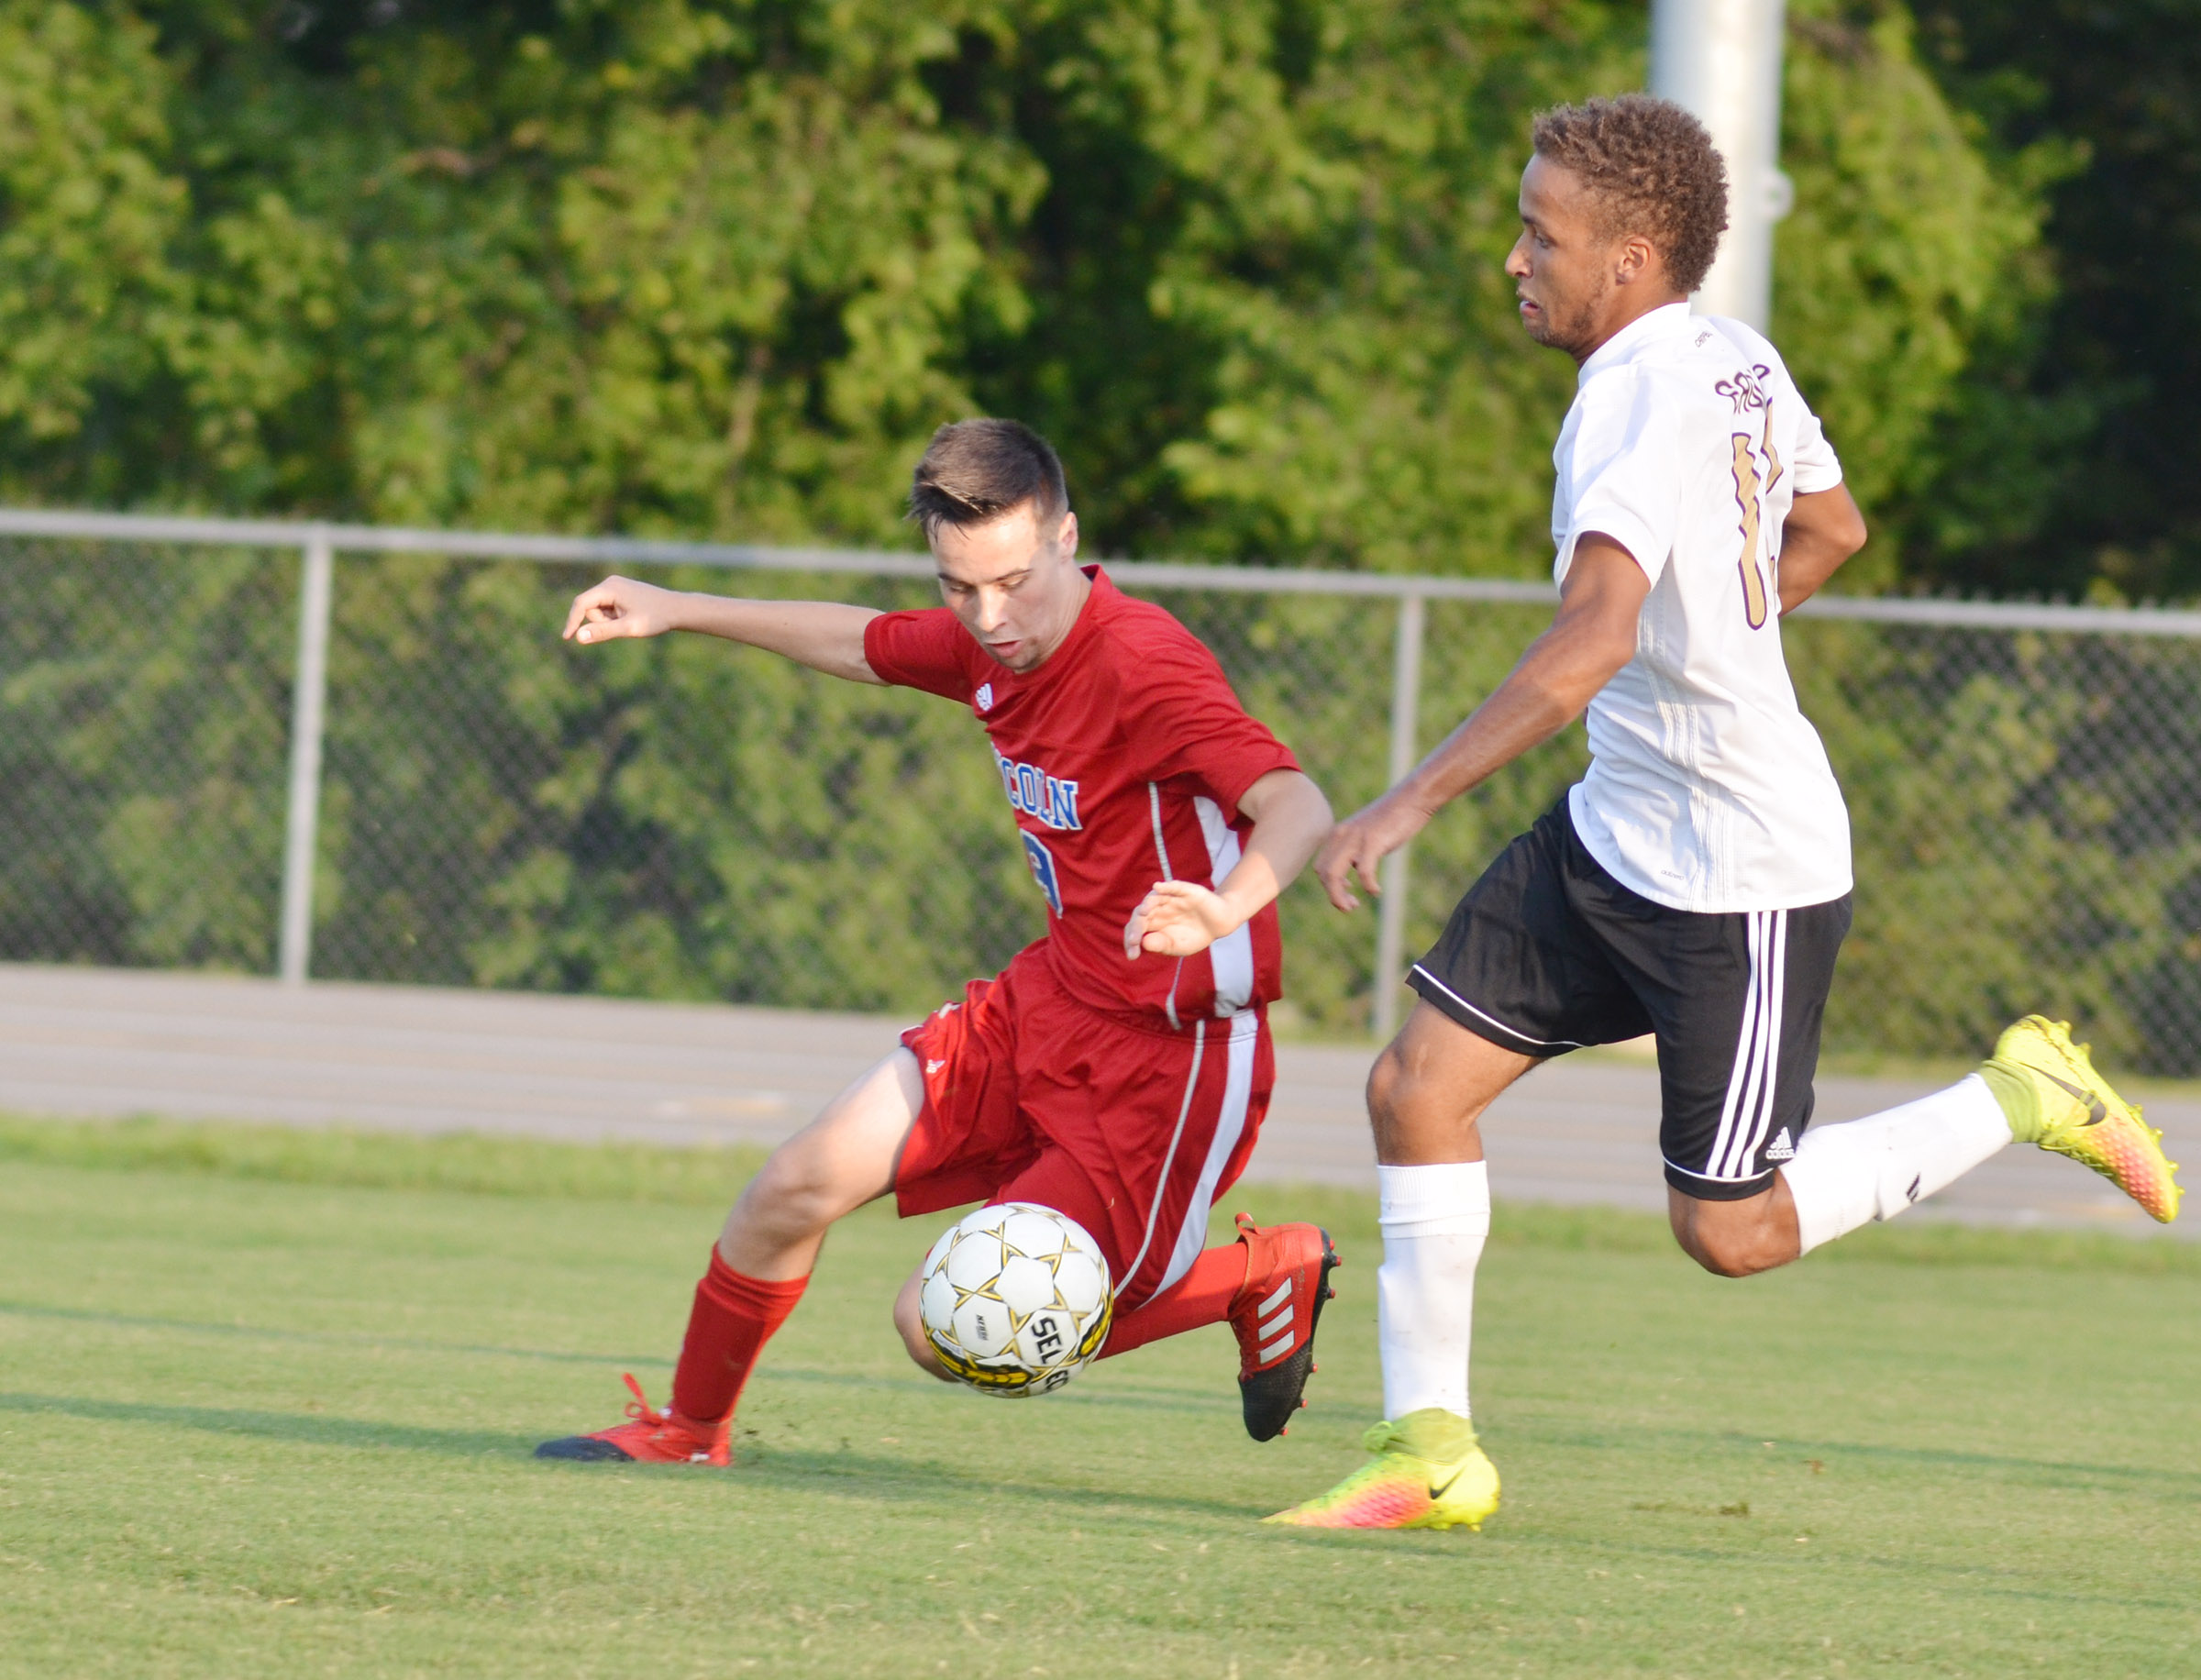 CHS senior Ethan Lay plays defense.